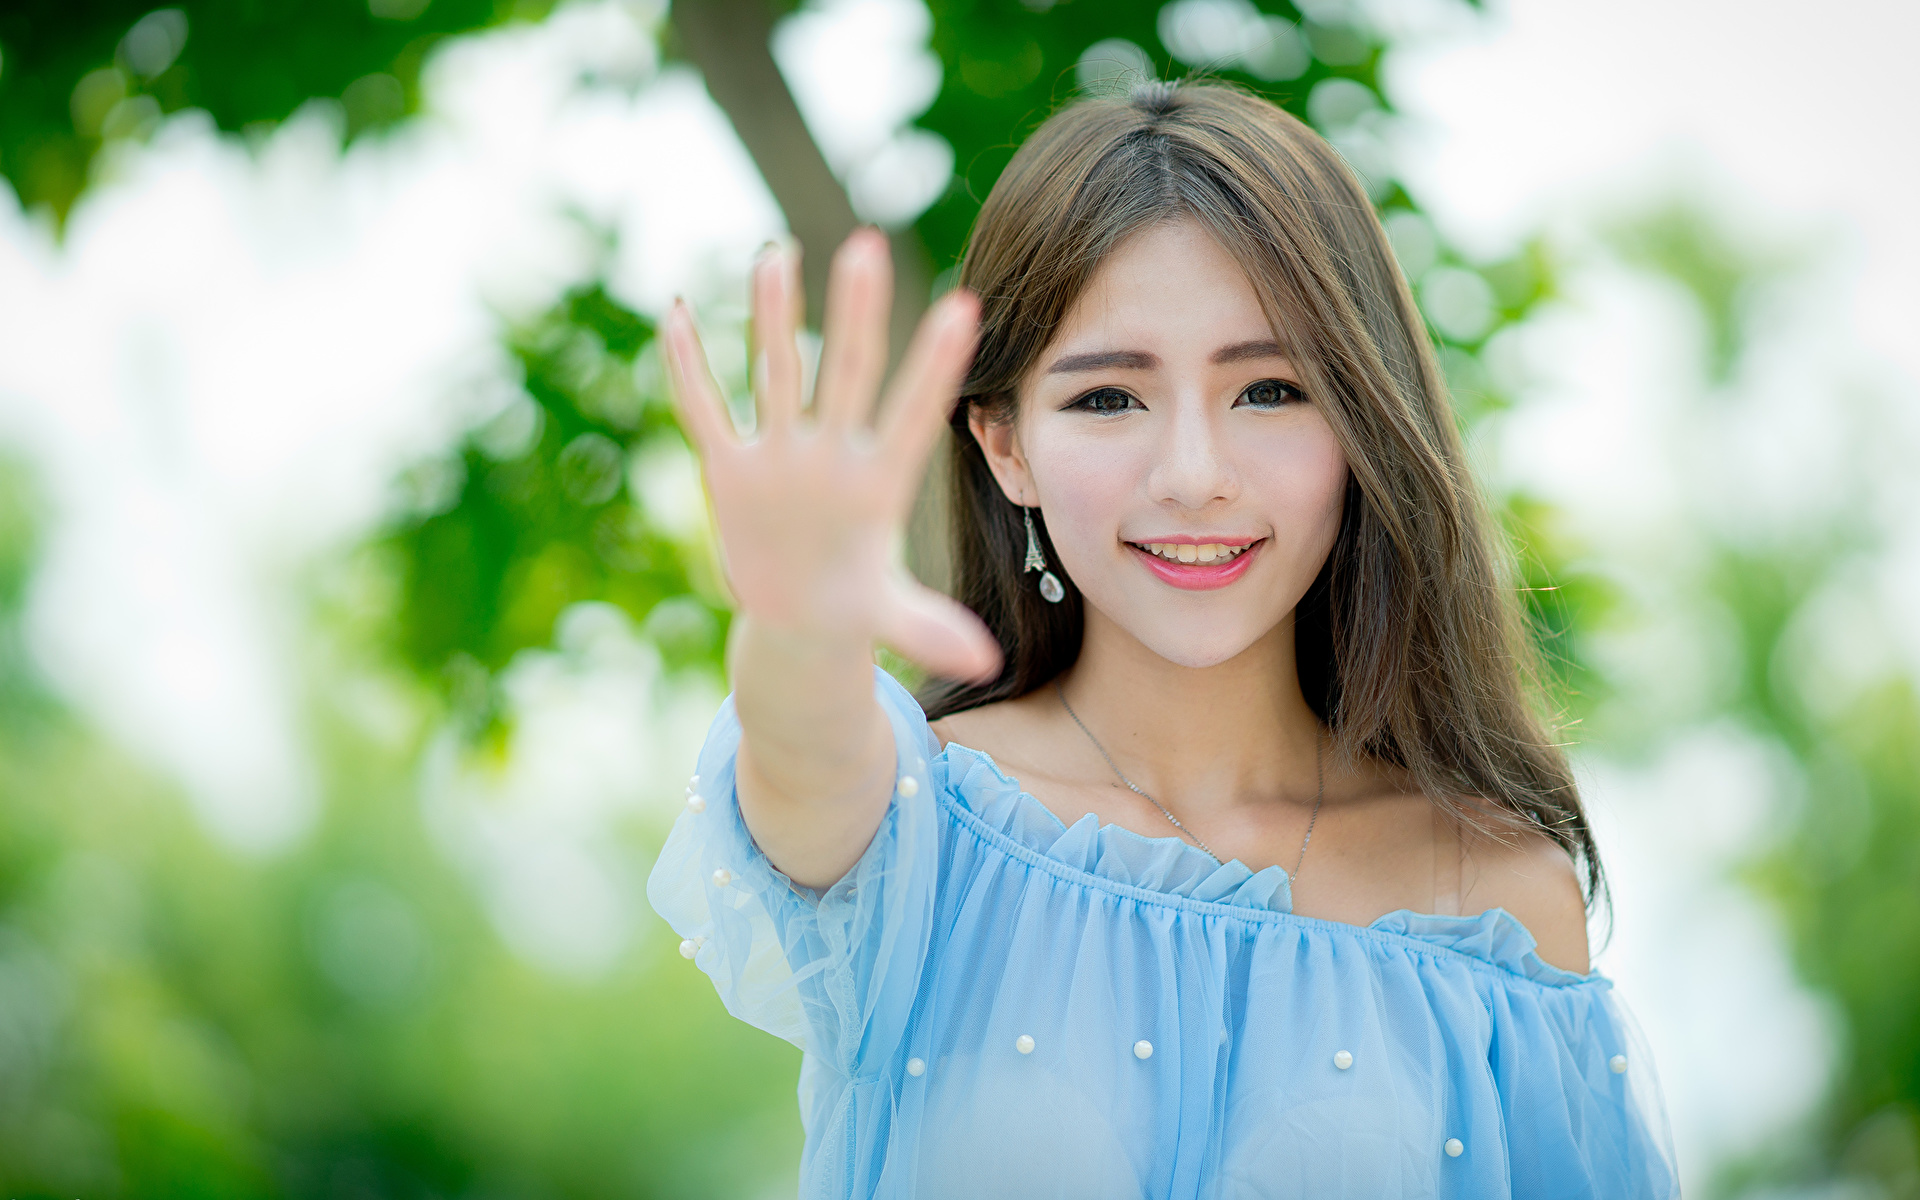 Wallpaper Brown haired Smile Gesture blurred background Girls Asiatic Hands Staring 1920x1200 gestures Bokeh female young woman Asian Glance